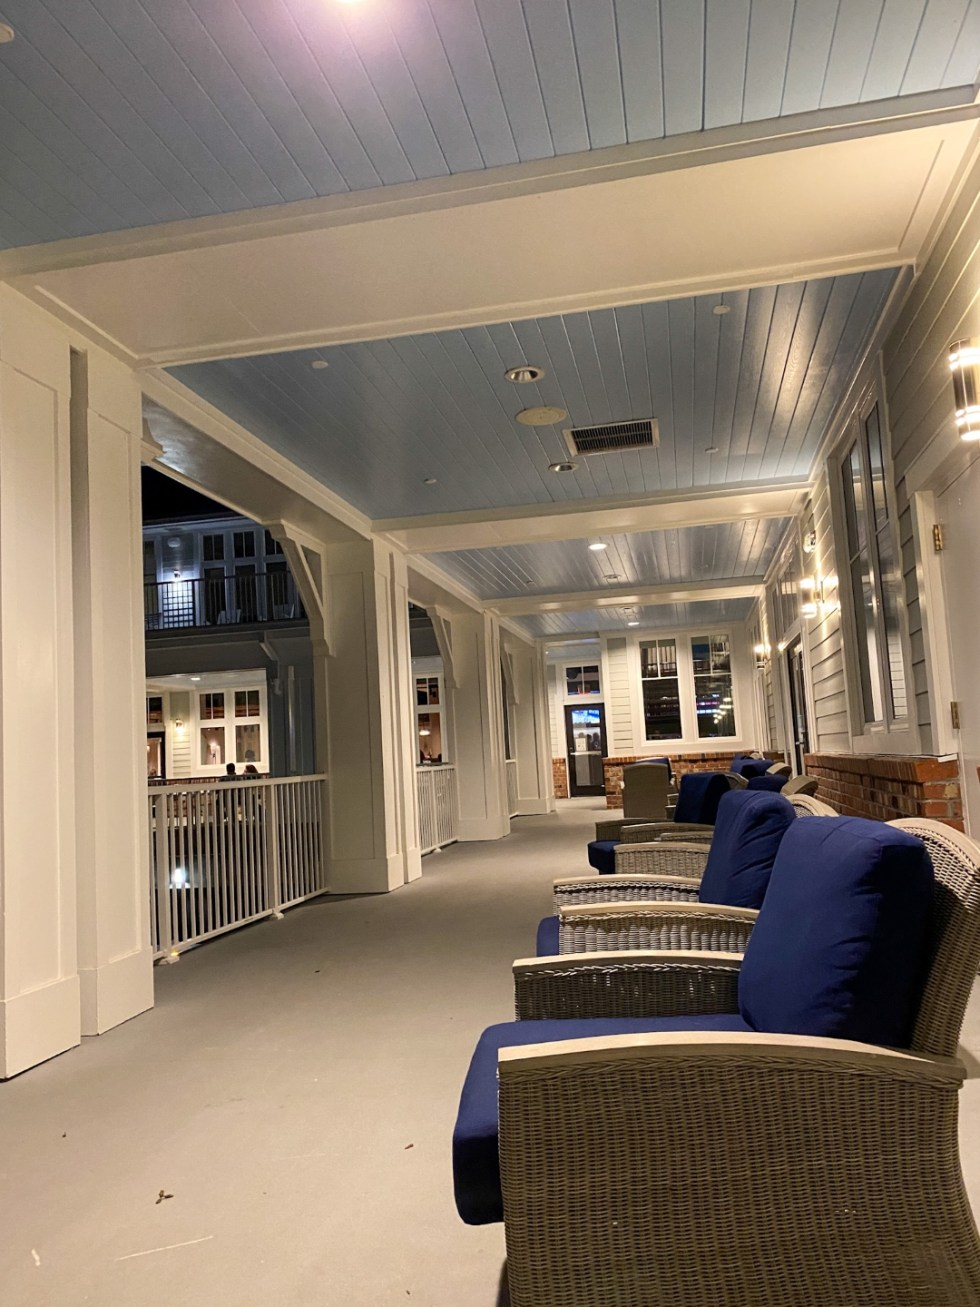 Weekend Travel: The Best Things to Do in Beaufort NC in 48 Hours - I'm Fixin' To - @imfixintoblog |Things to Do in Beaufort NC by popular NC travel blog, I'm Fixin' To: image of a covered porch with blue lounge chairs.